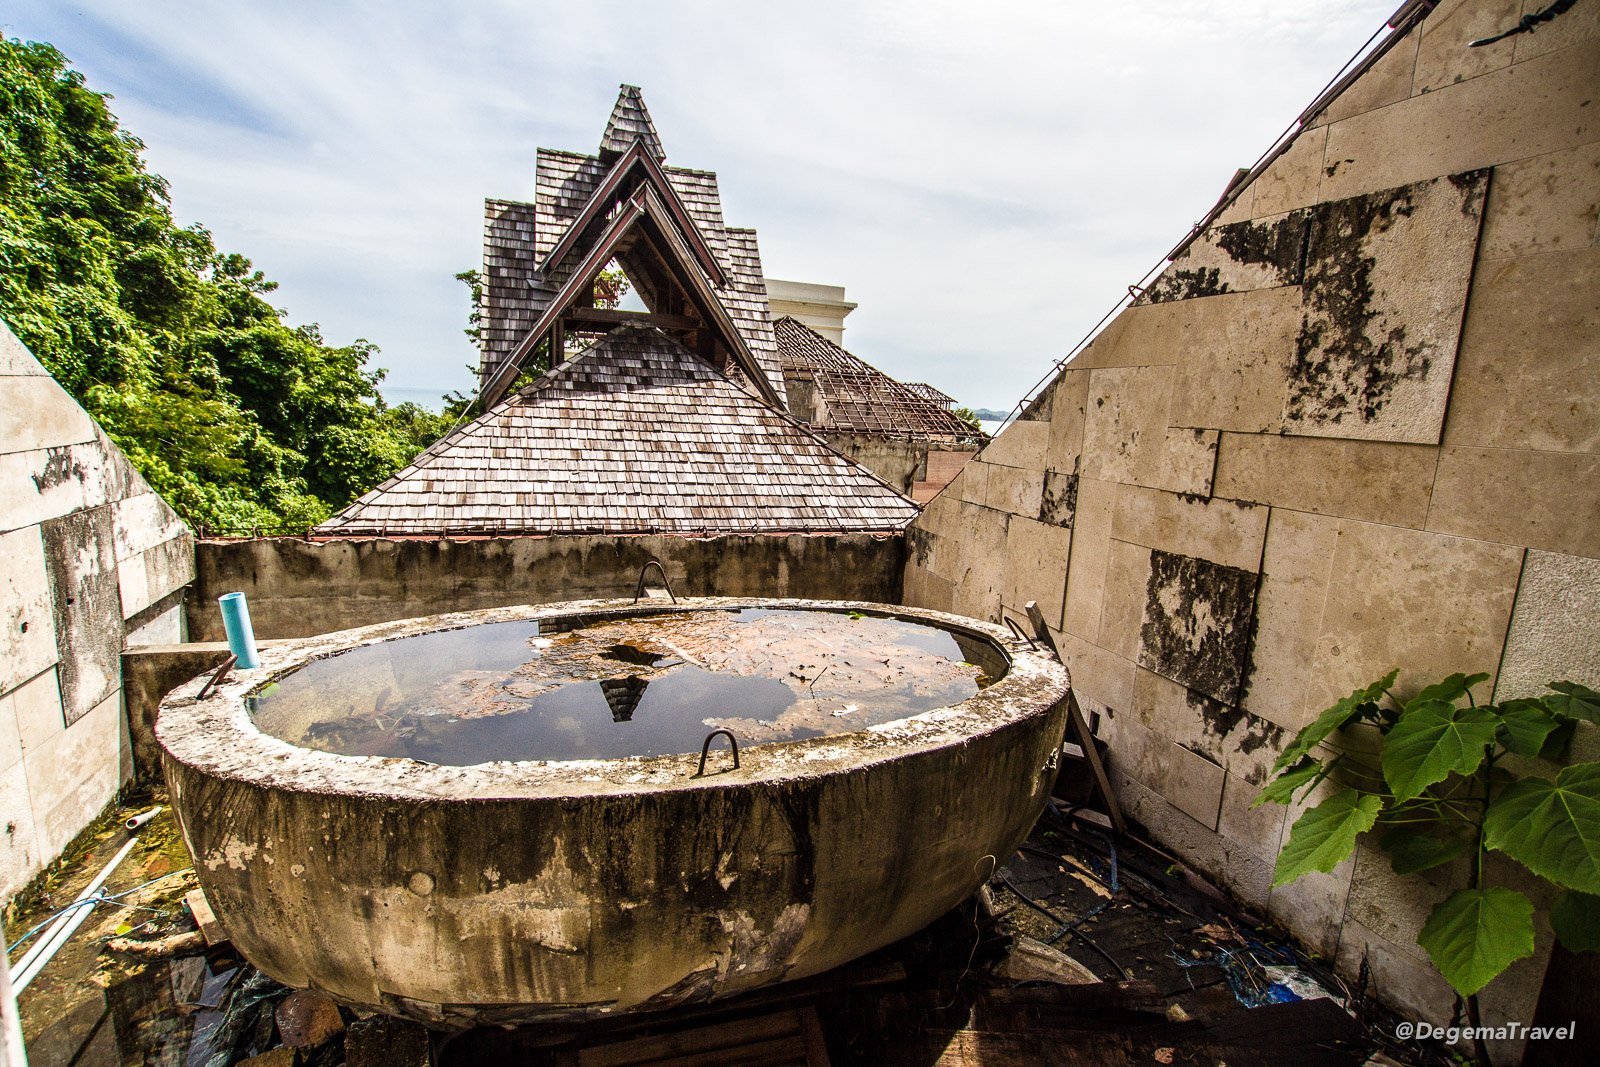 Inside the abandoned Phuket Peninsula Spa & Resort in Nai Yang, Phuket, Thailand